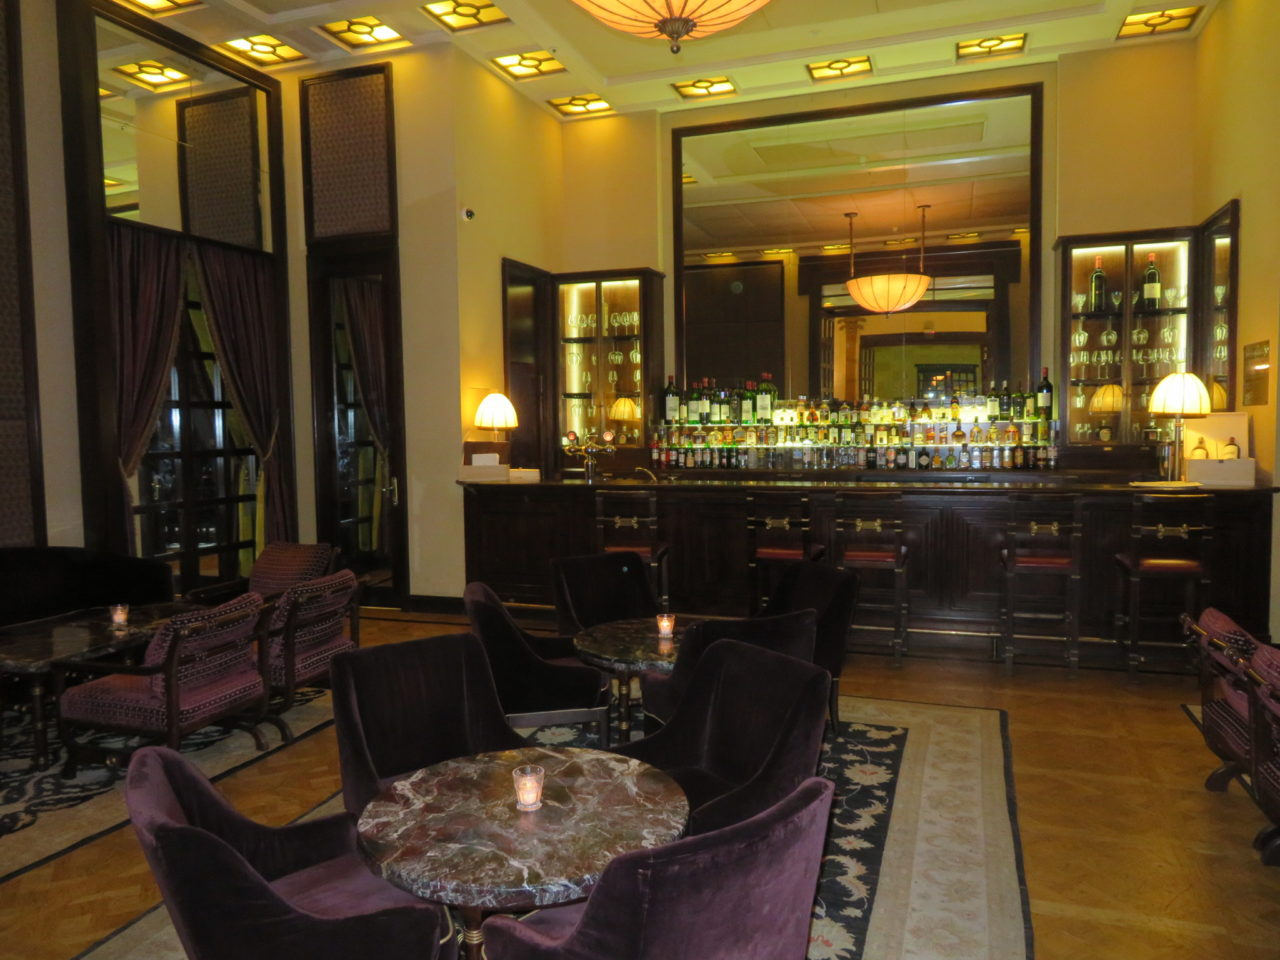 King David Hotel, Jerusalem Israel - The Lobby Bar